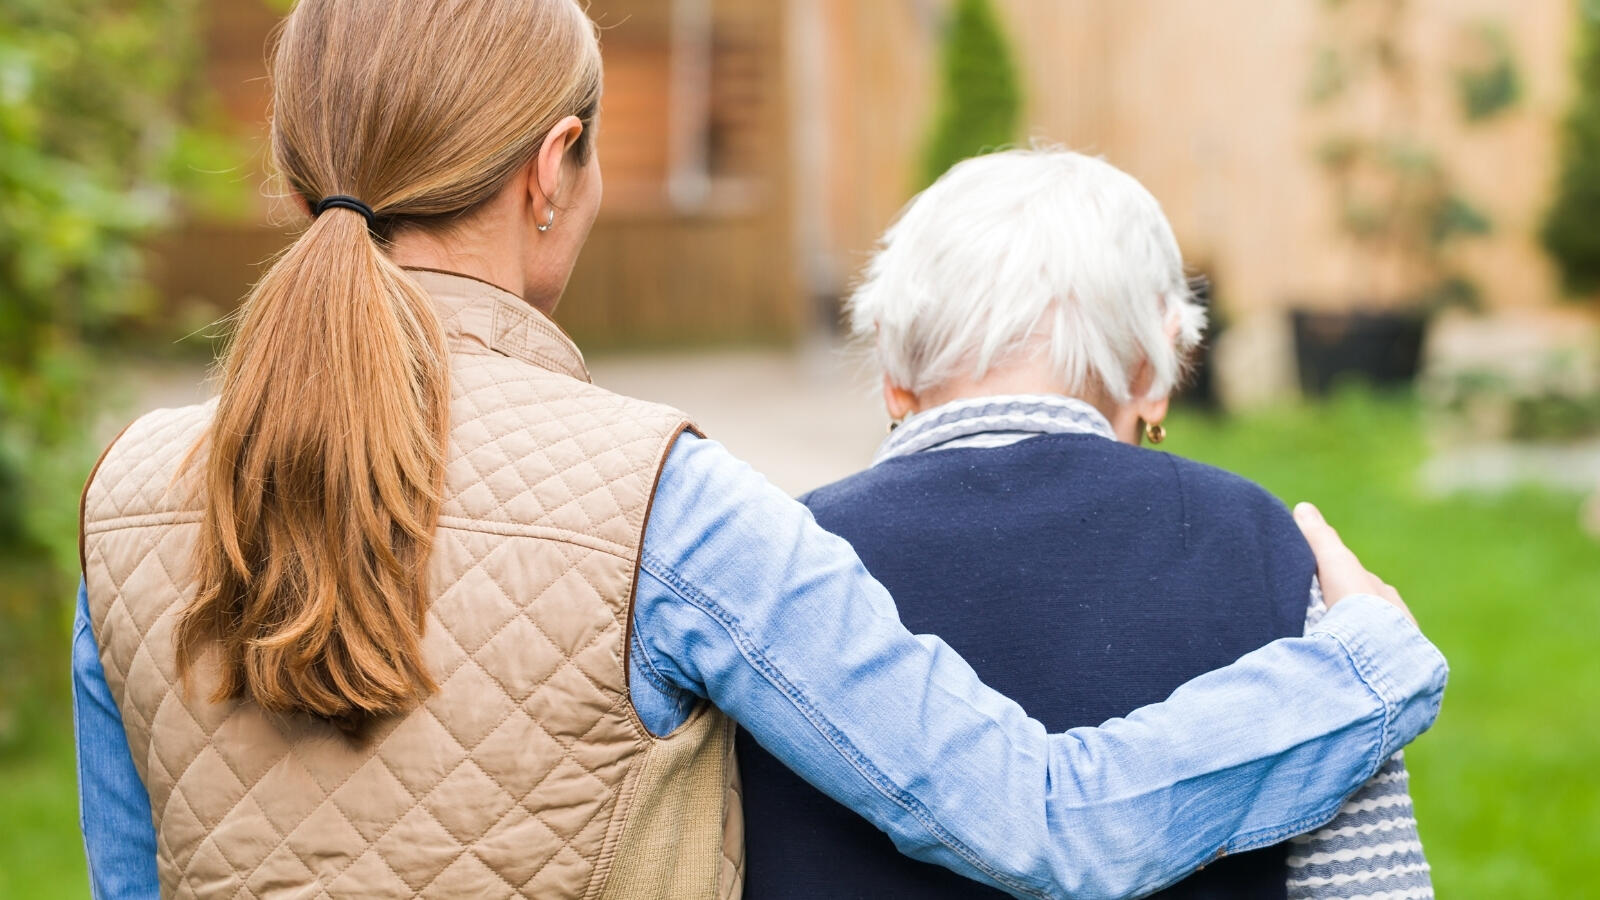 Practical guide for caring for someone with dementia